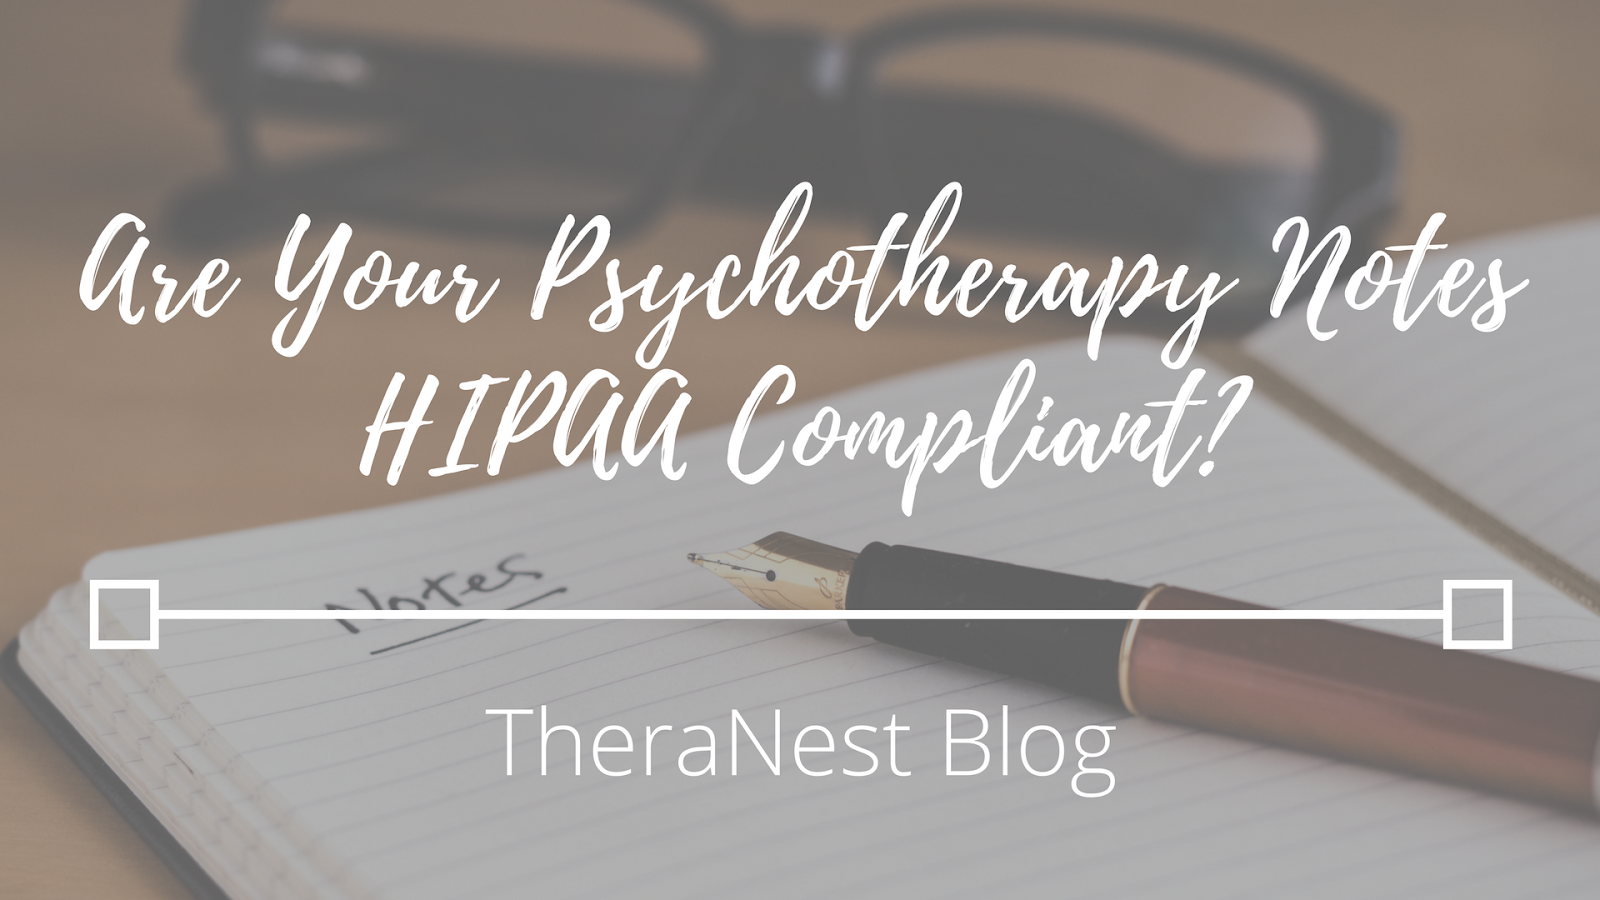 Are Your Psychotherapy Notes HIPAA Compliant? - TheraNest Blog